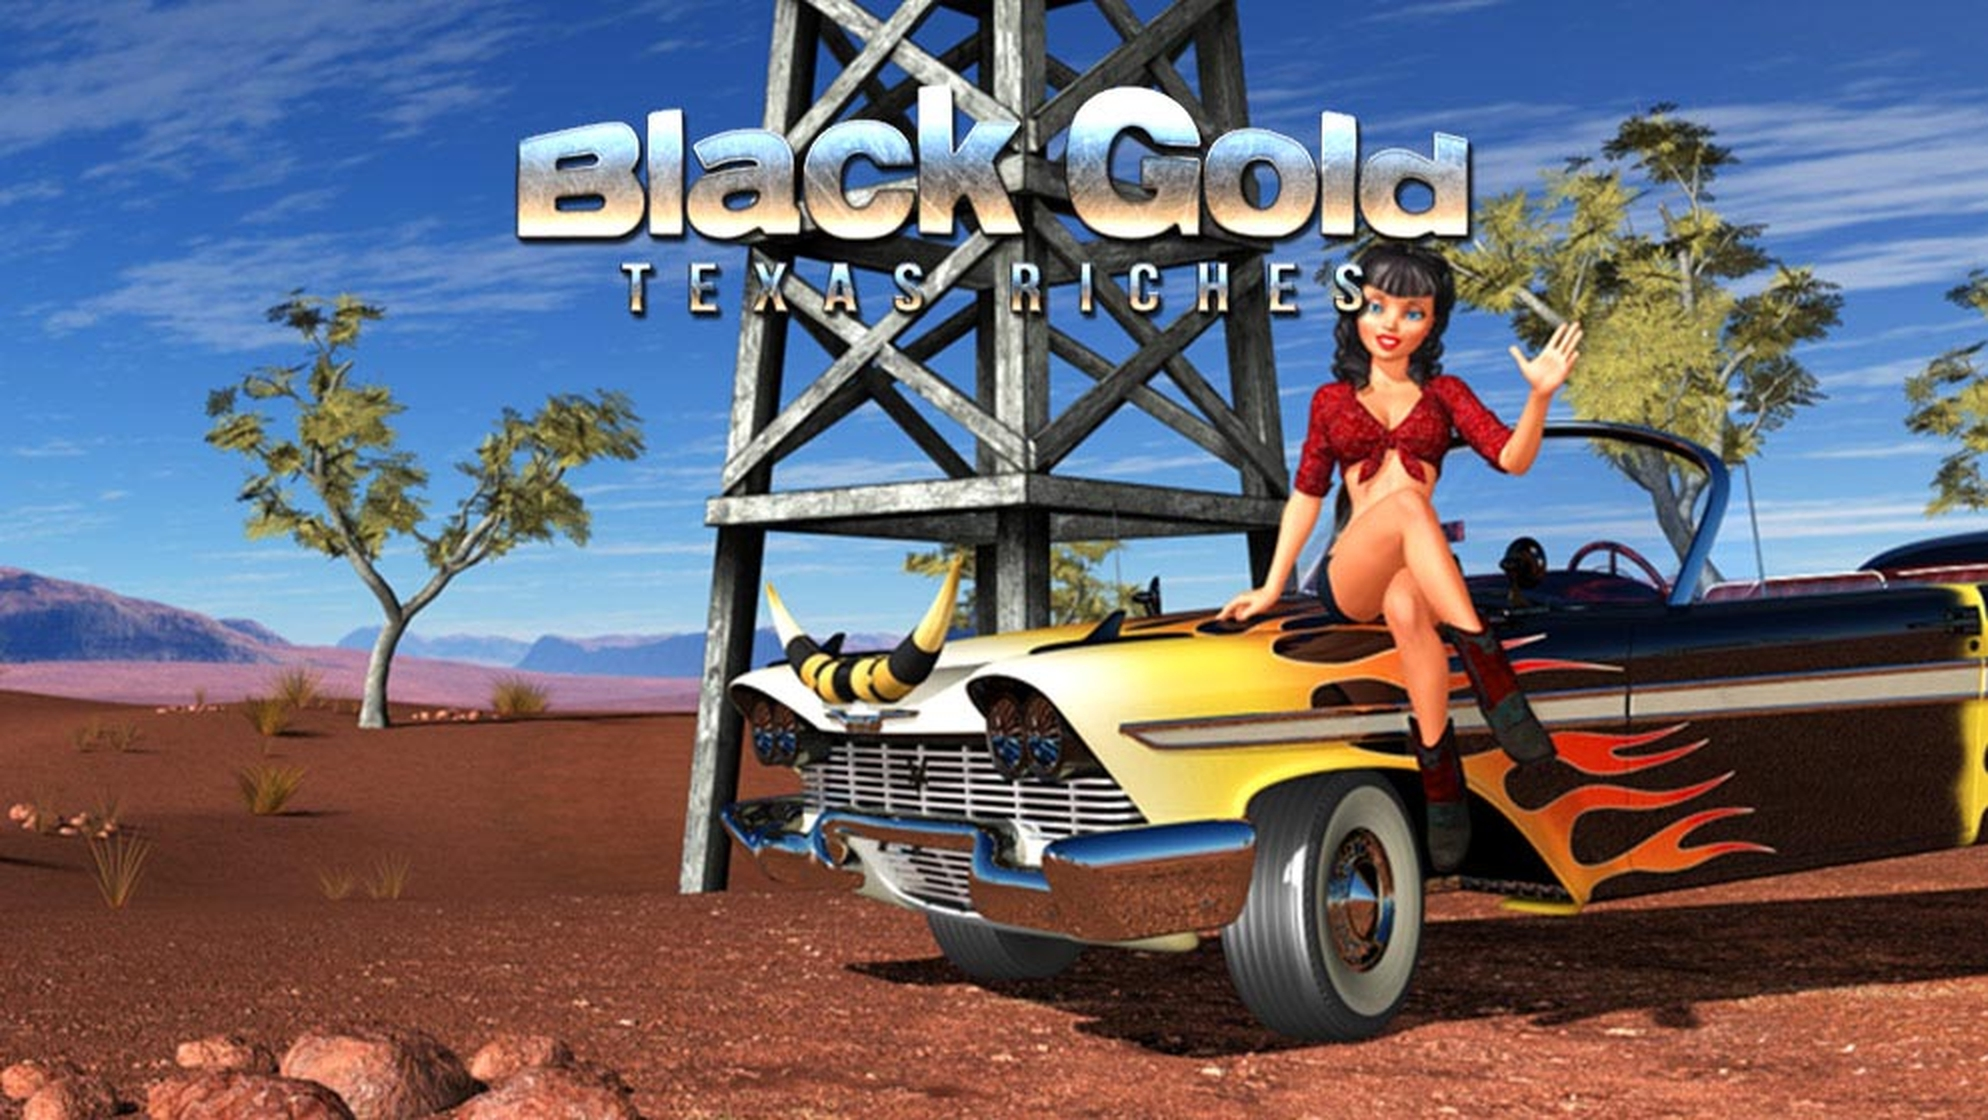 The Black Gold Texas Riches Online Slot Demo Game by Capecod Gaming